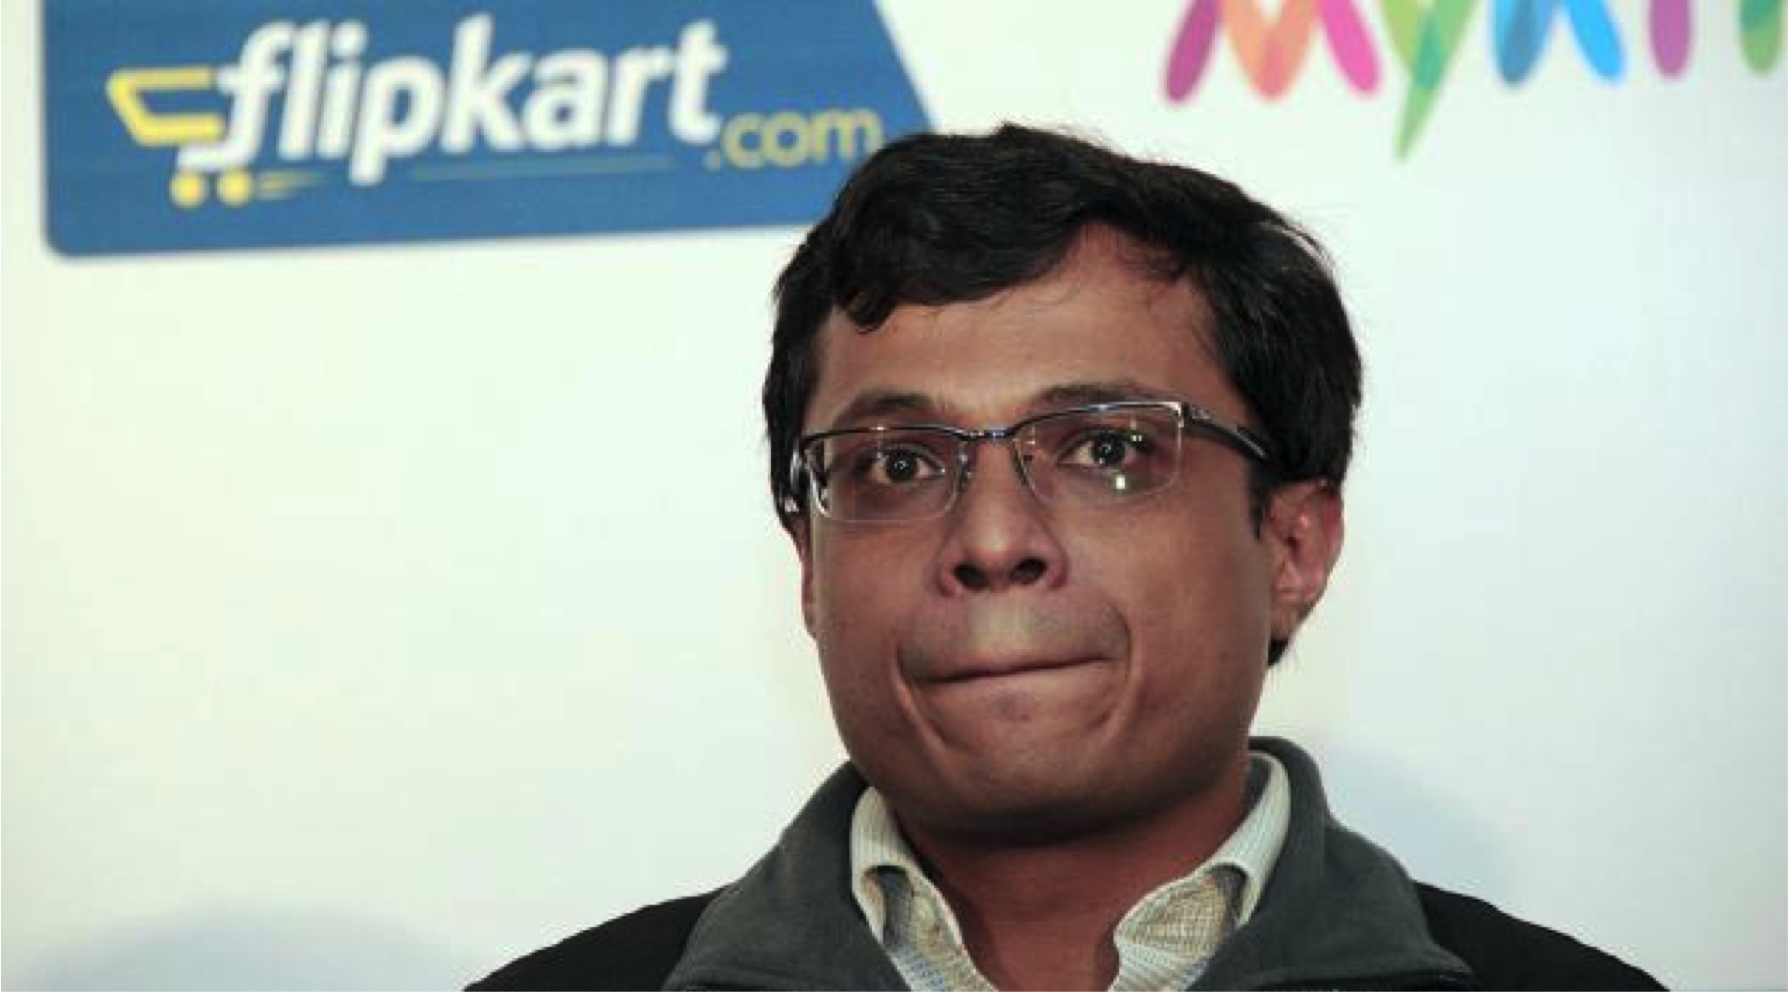 Morgan Stanley Cuts Flipkart's Valuation Again; Now Values It At $9.39 Billion